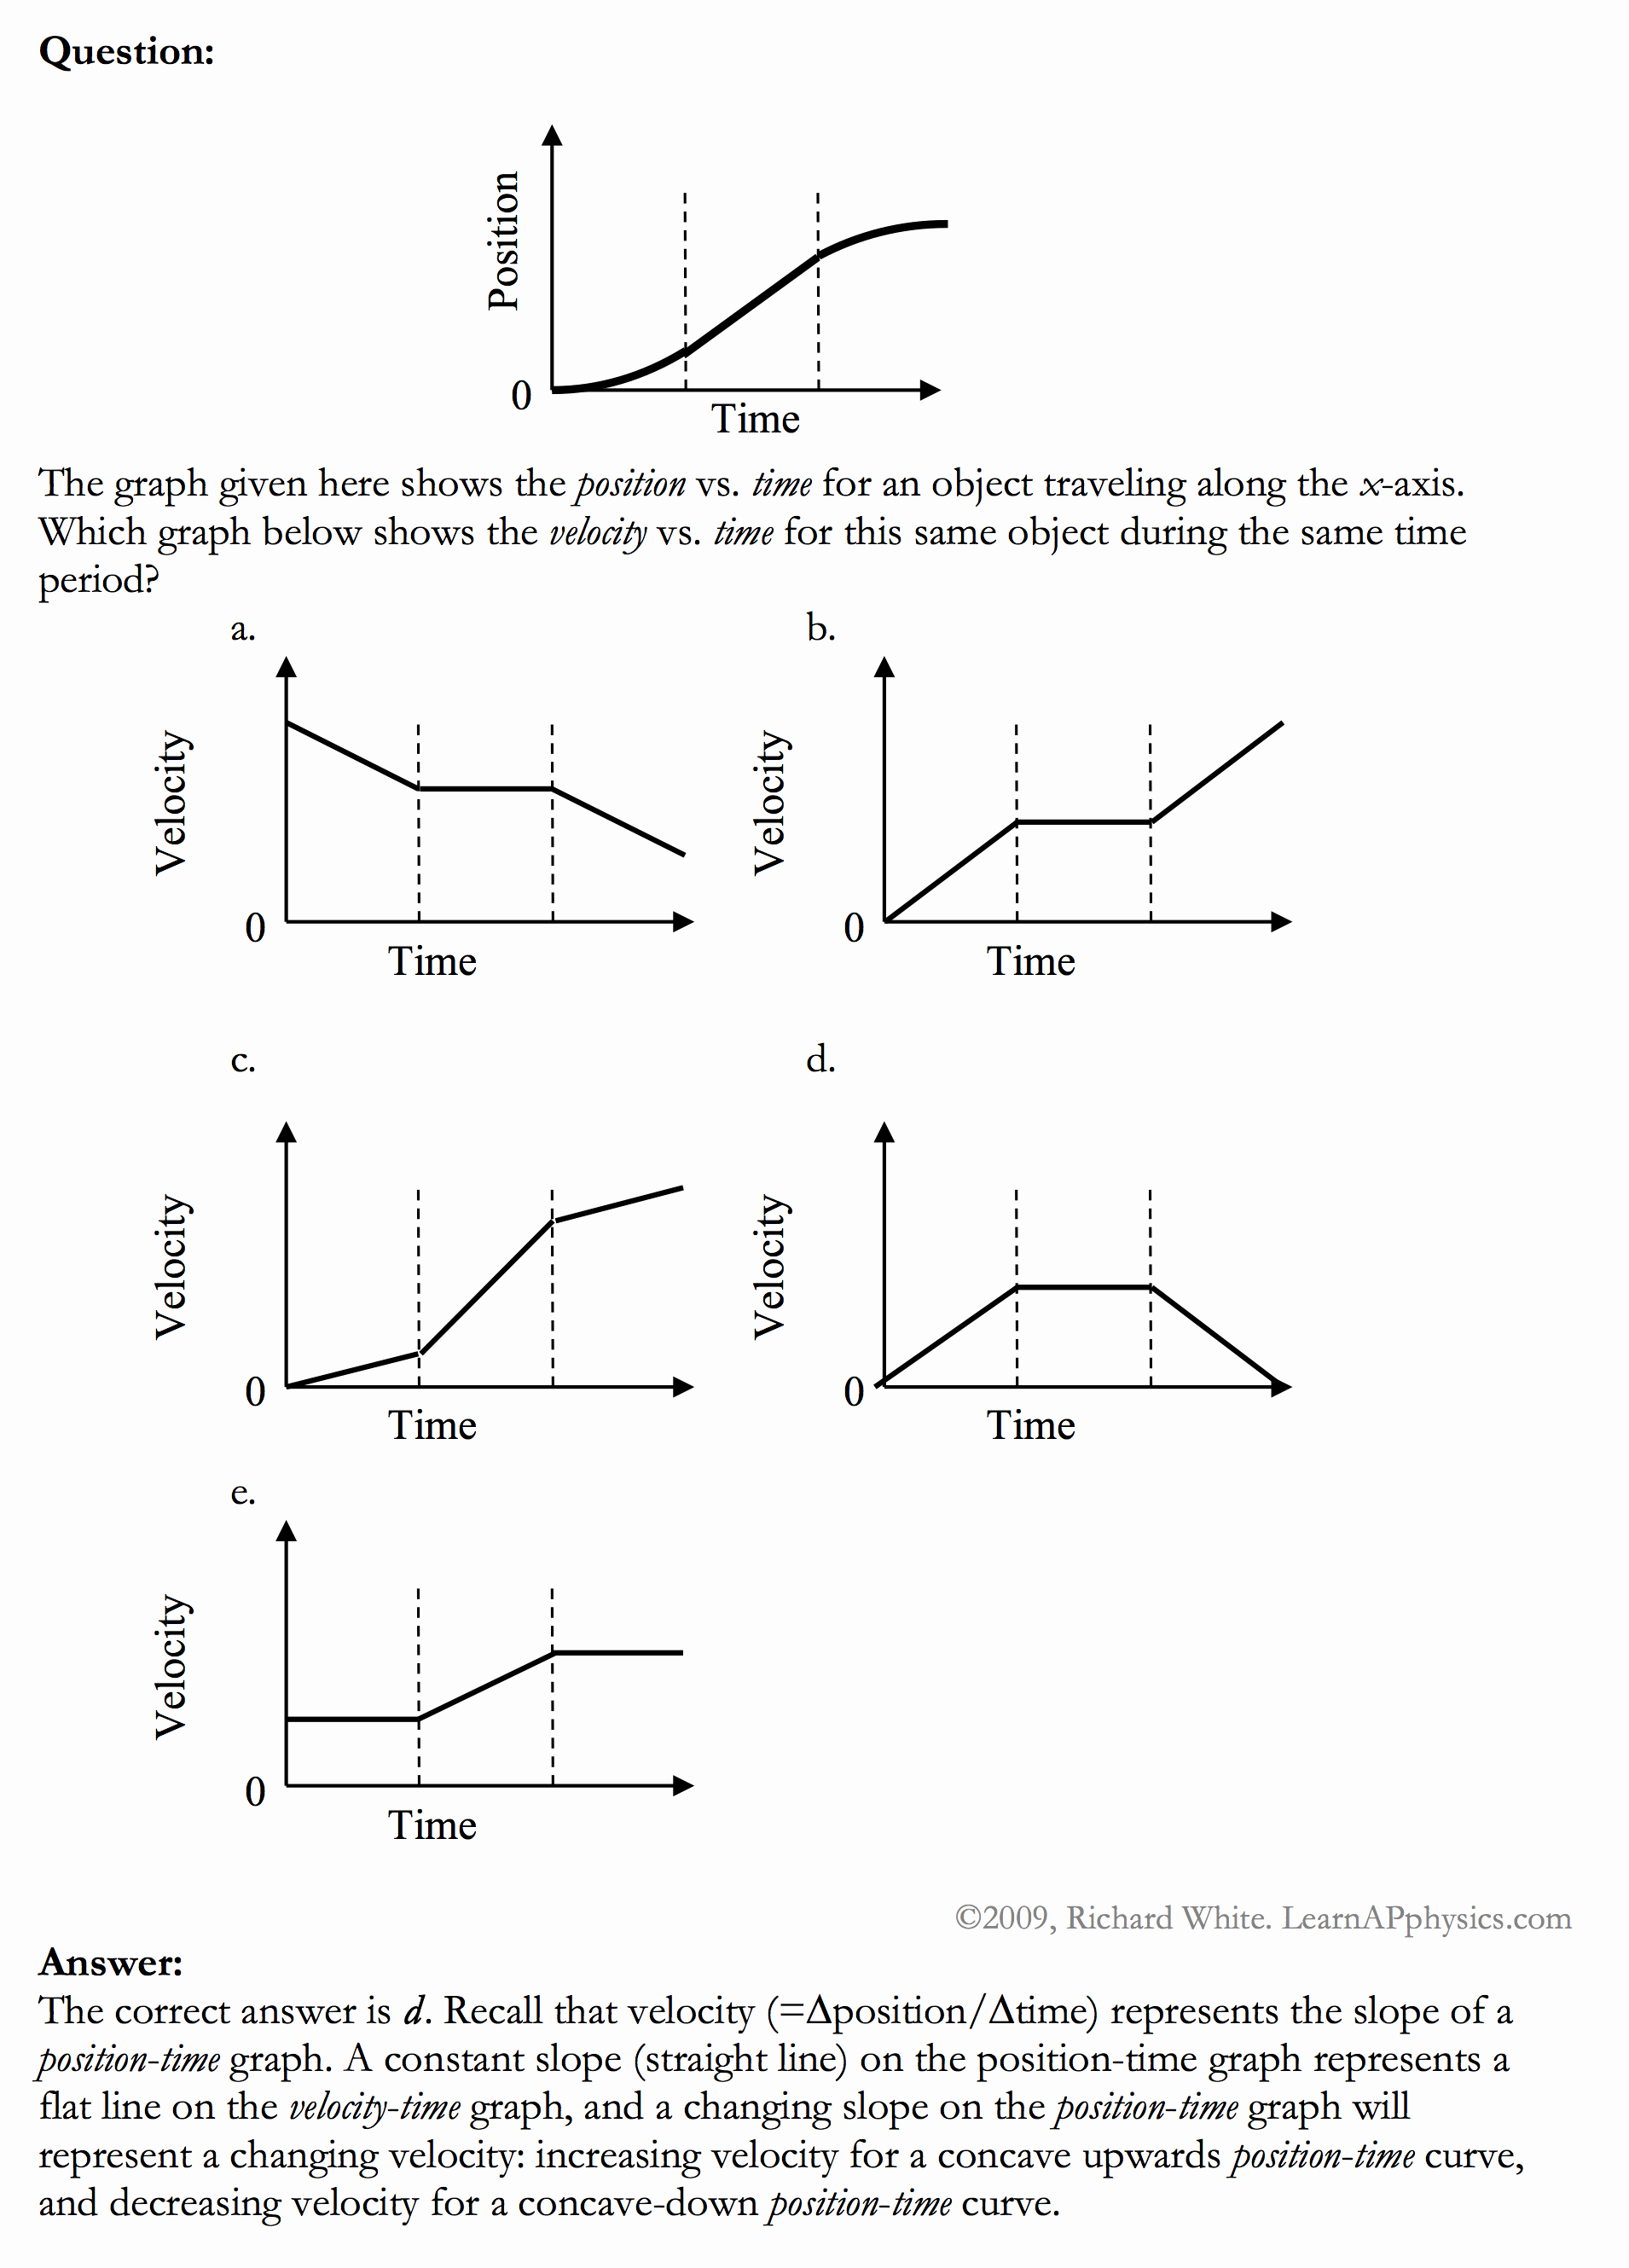 Kinematics Worksheet with Answers Best Of Learn Ap Physics Ap Physics 1 & 2 Kinematics